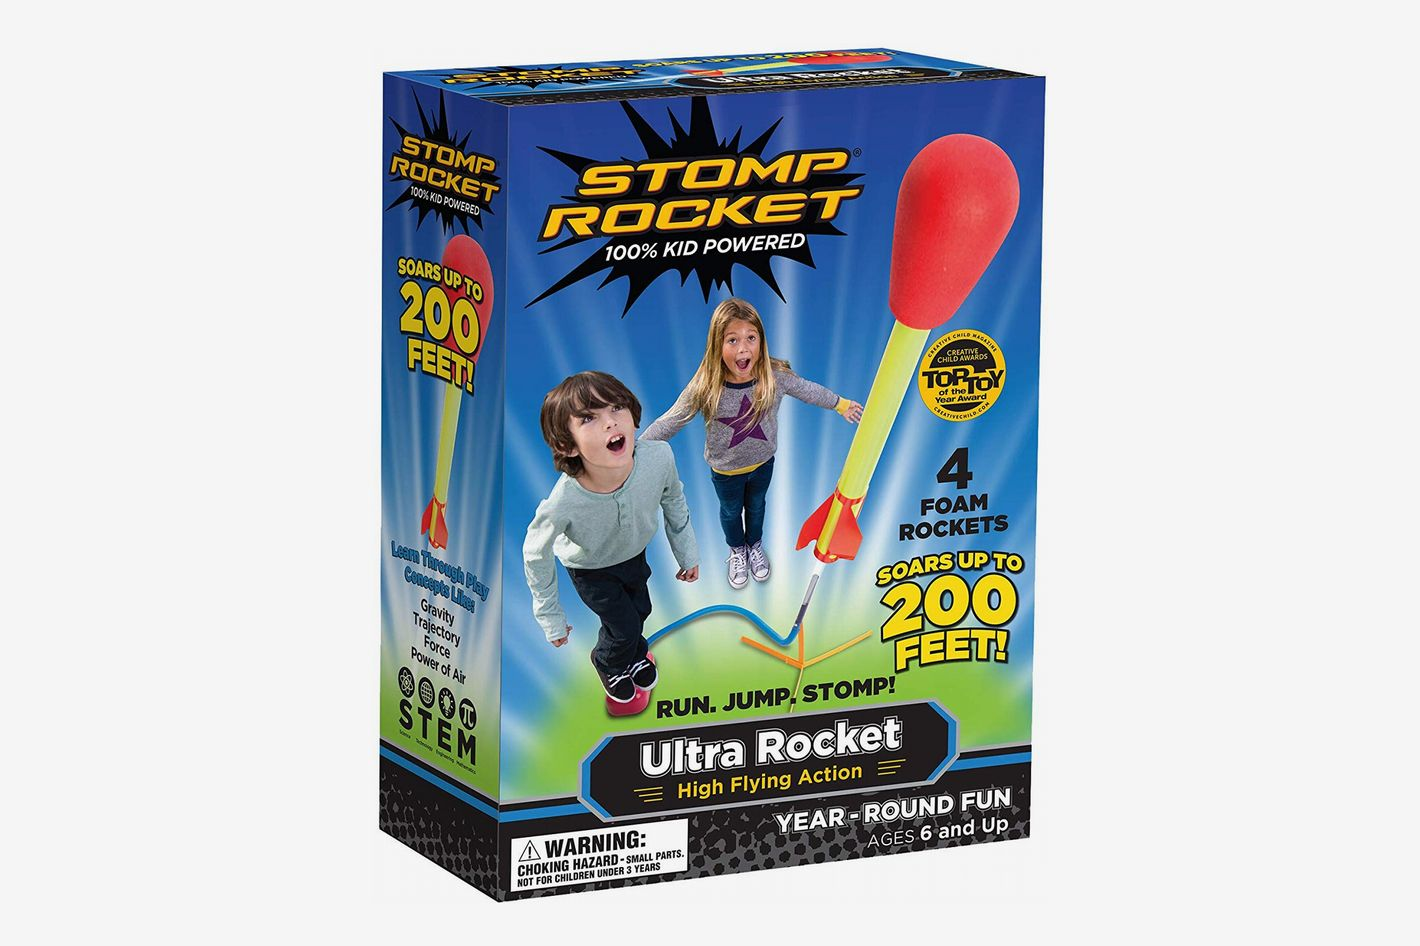 Stomp Rocket Ultra Rocket